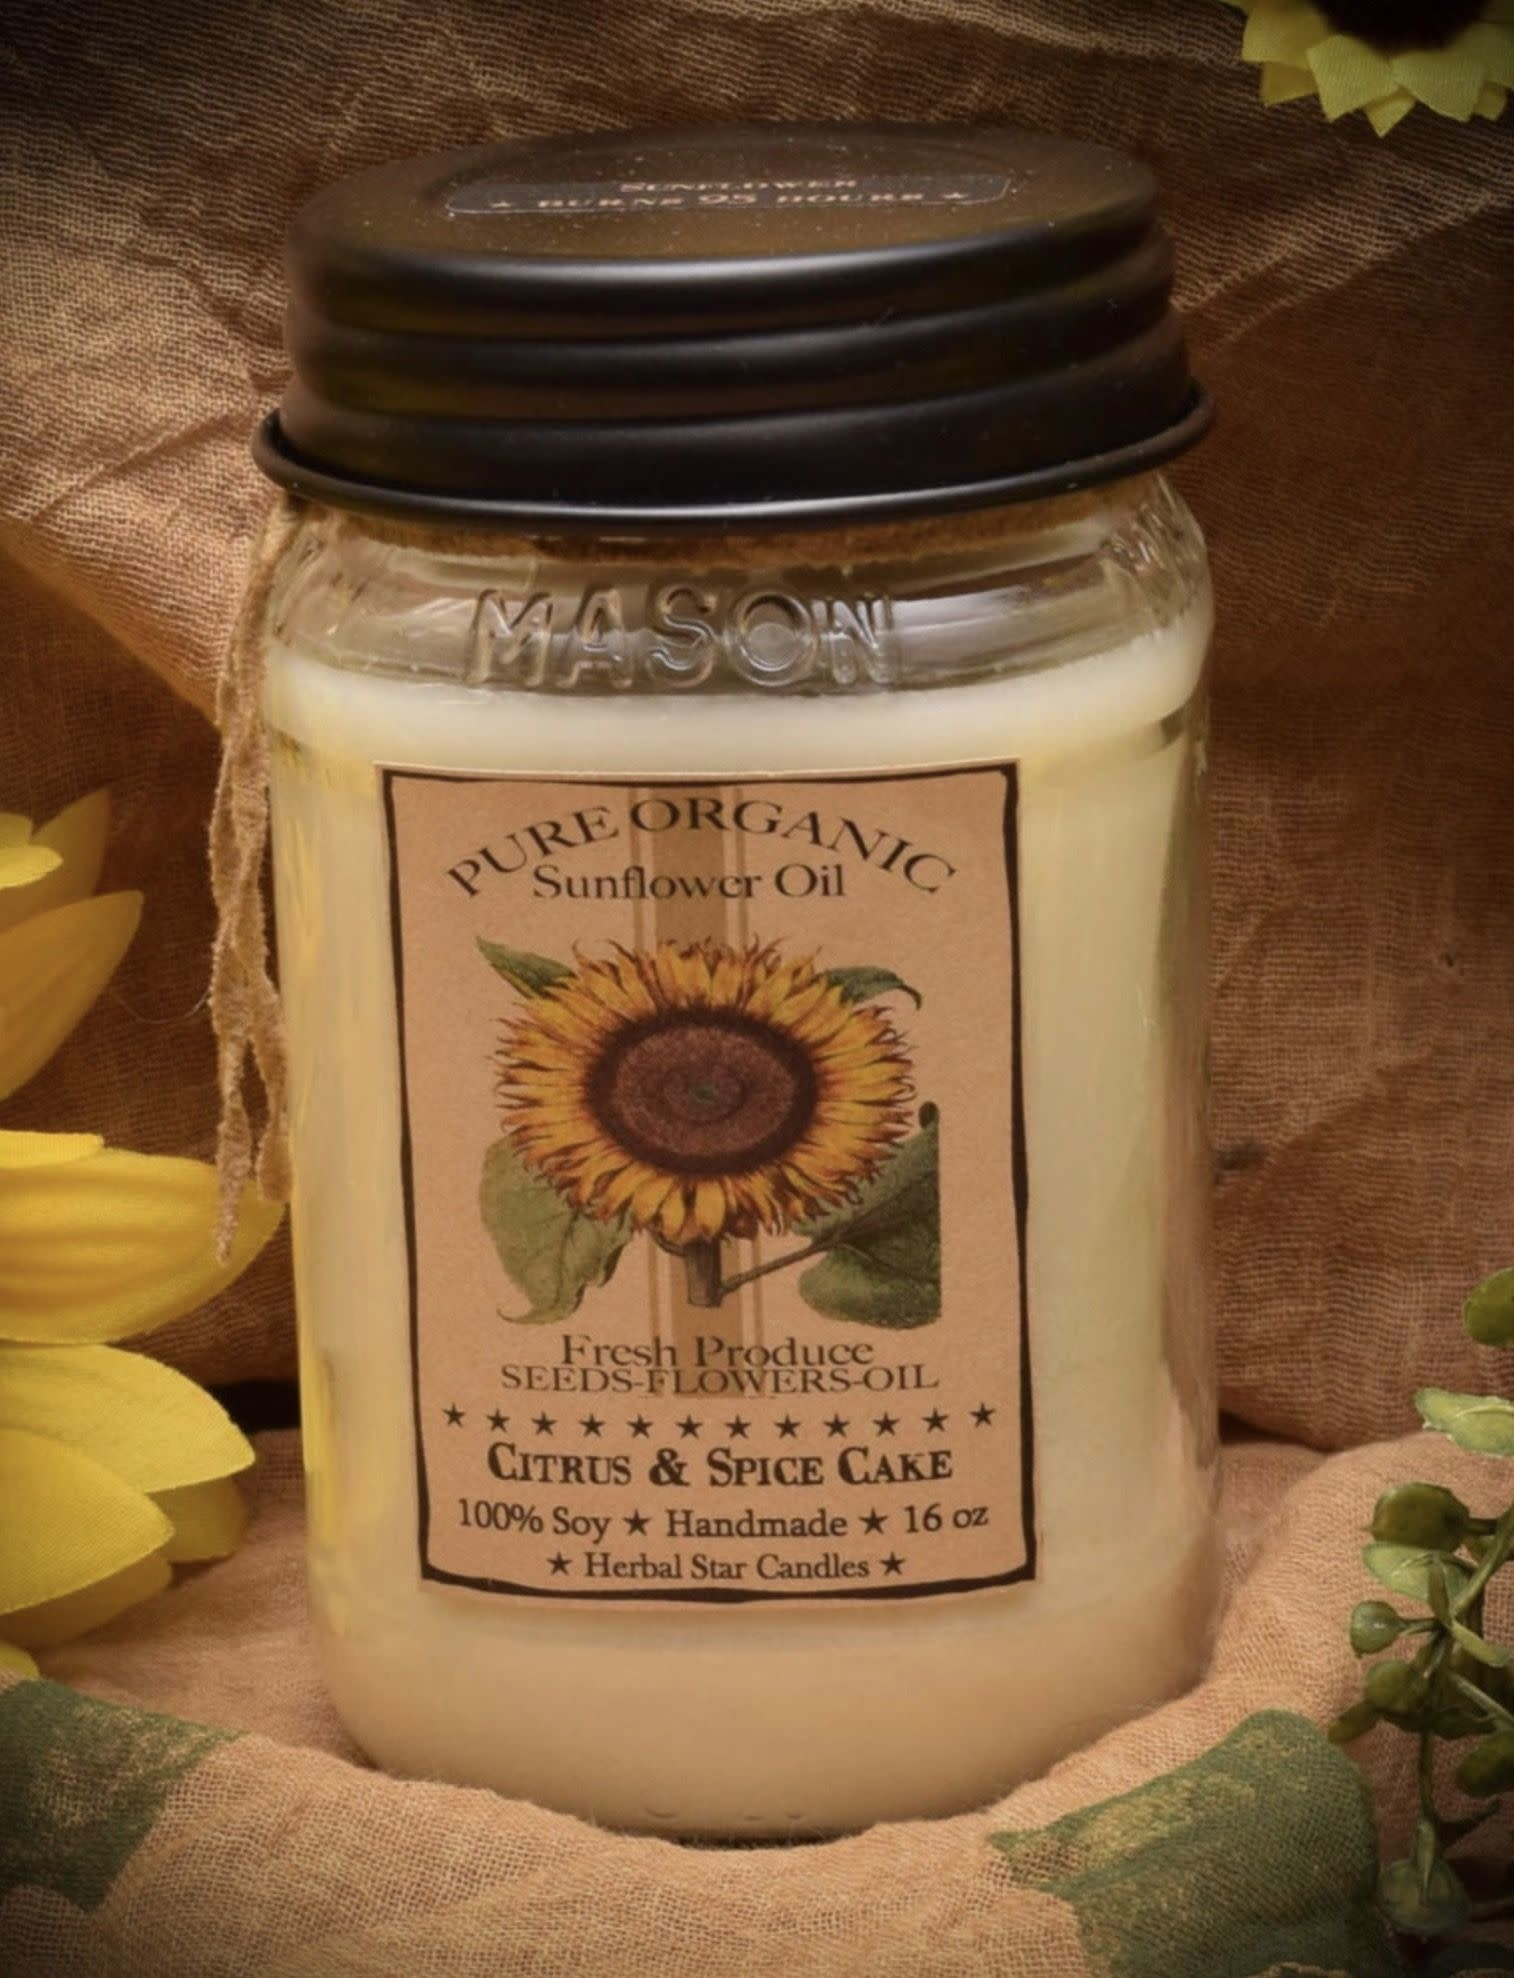 Herbal Star Candles Sunflower, Citrus & Spice Cake 16oz Soy Jar Candle